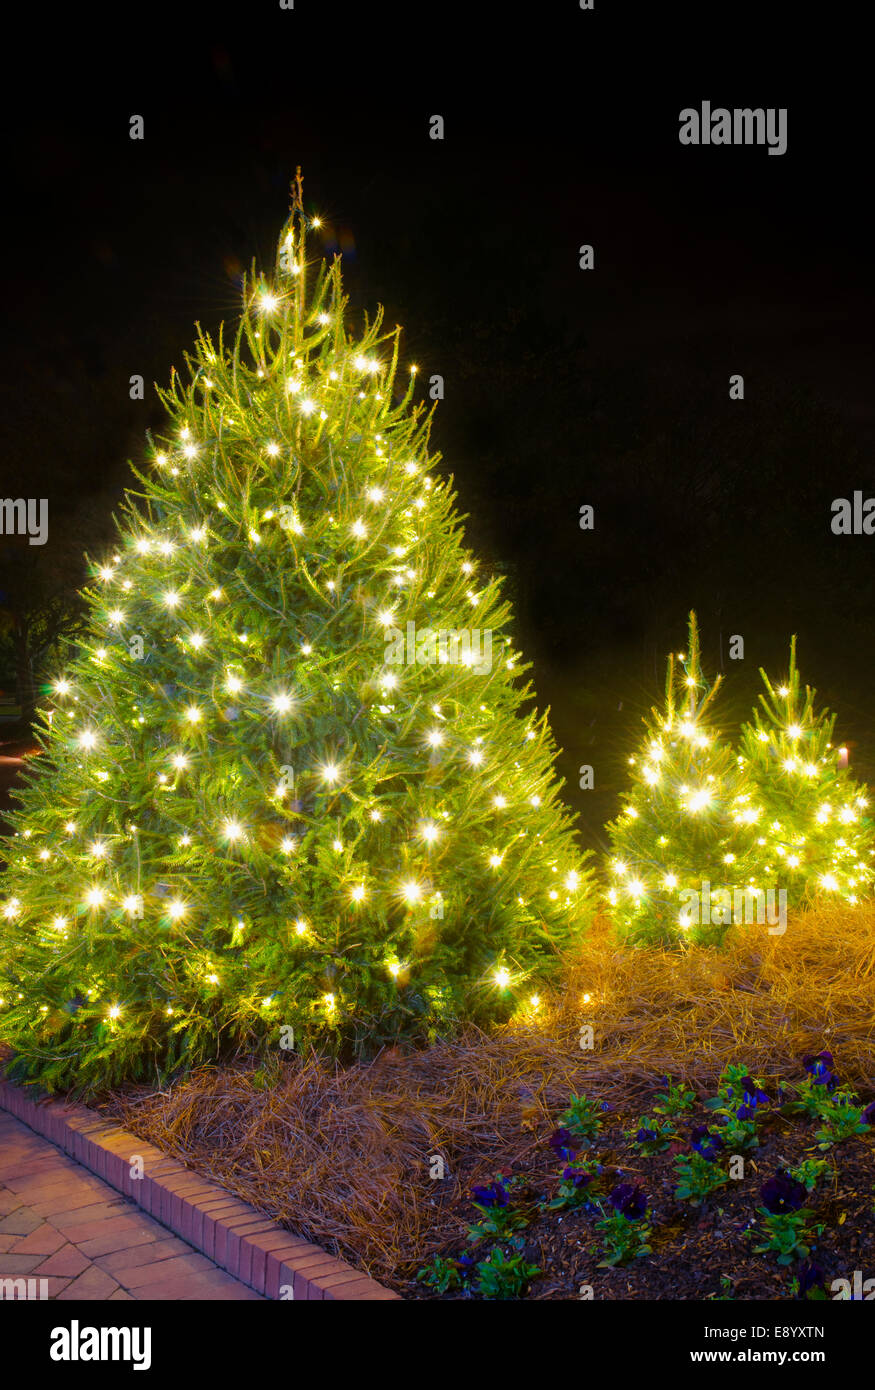 Spruce Trees White Christmas Lights Stock Photos & Spruce Trees ...